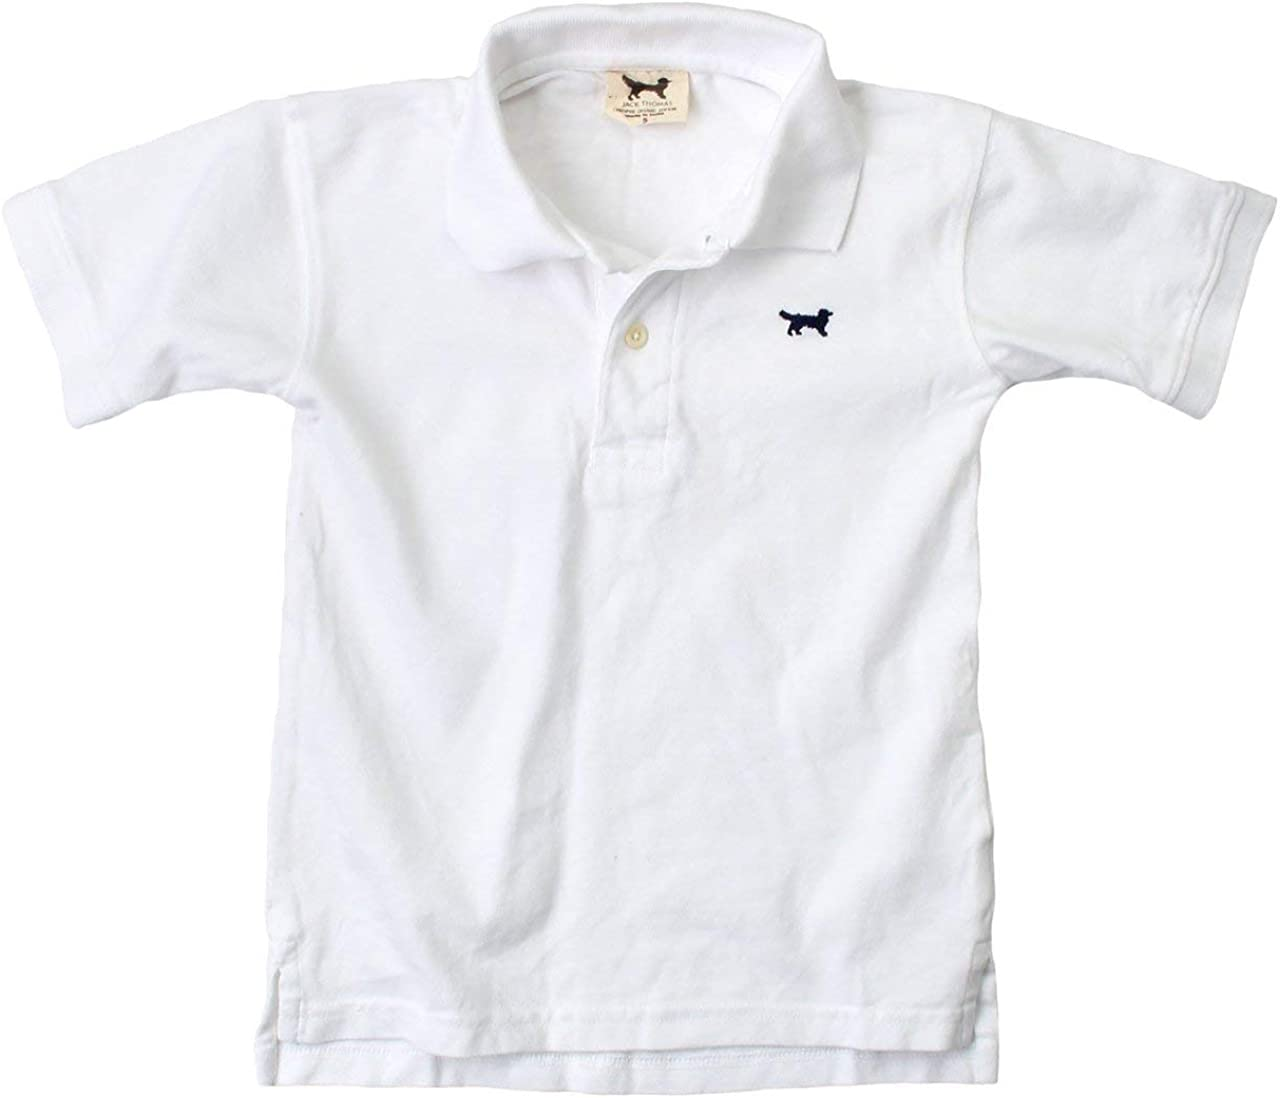 Wes & Willy Classic Short Sleeve Pique Polo/White